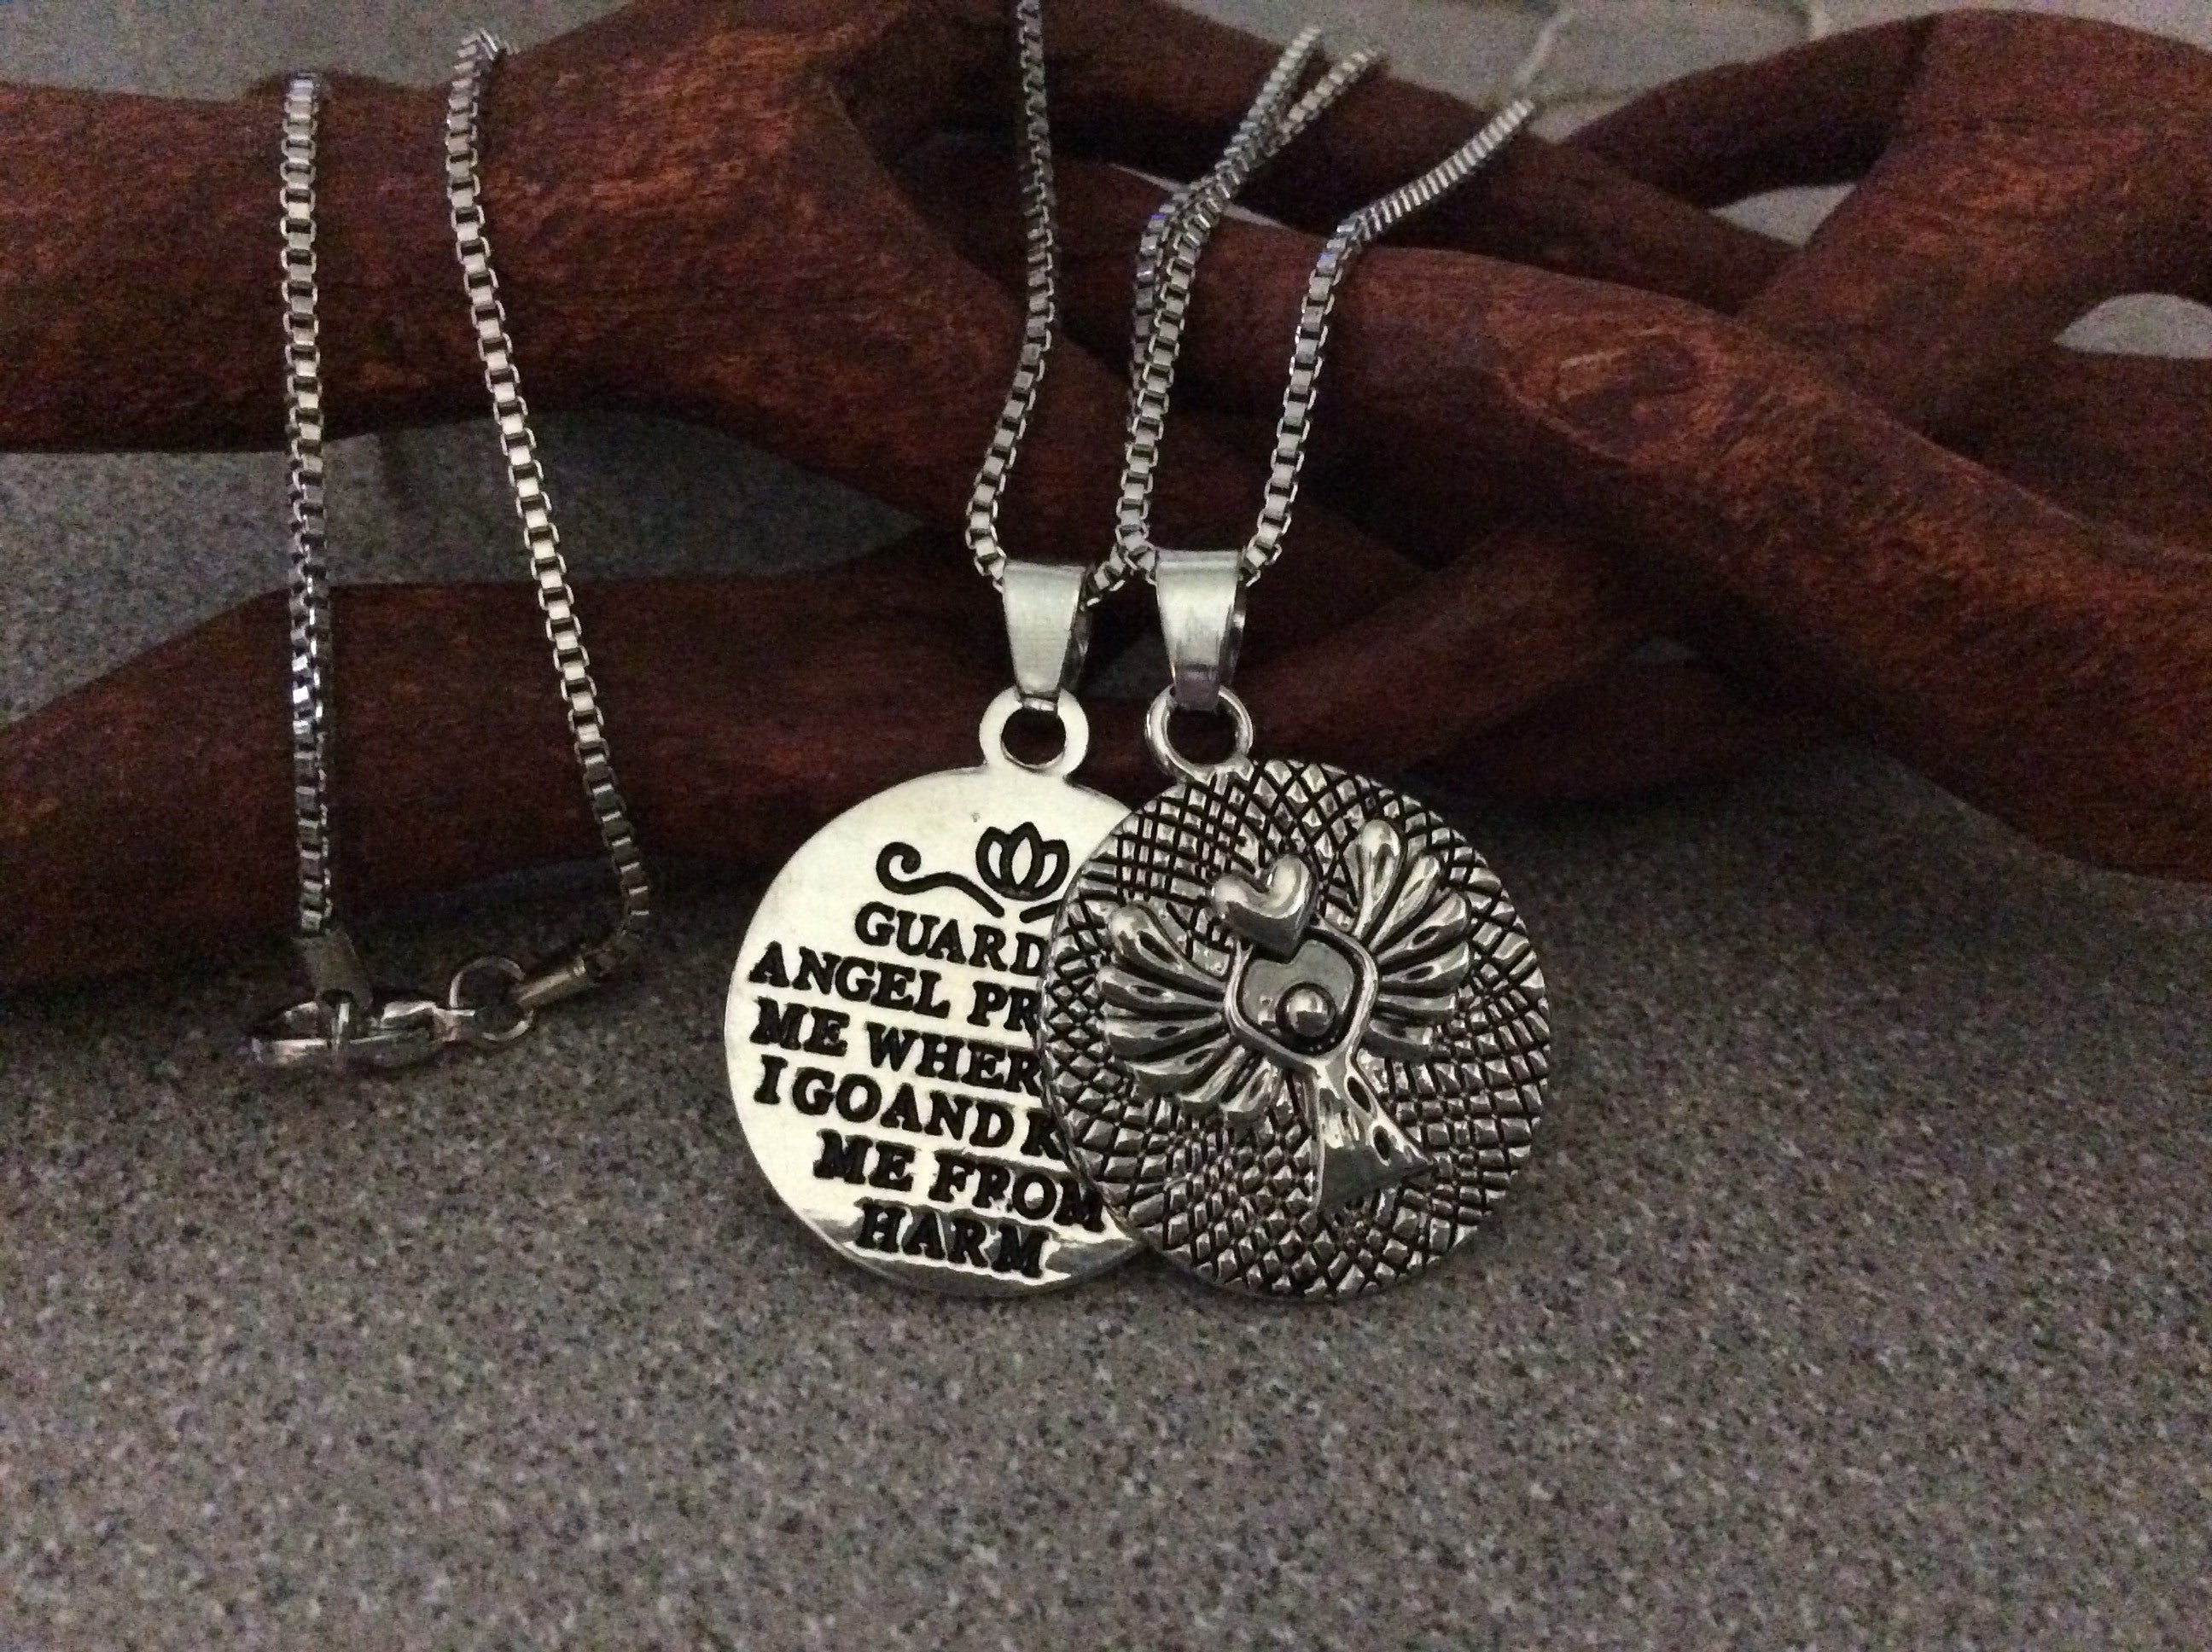 Guardian angel prayer silver stamped silver charm pendant necklace guardian angel prayer silver stamped silver charm pendant necklace trendy inspirational protection aloadofball Choice Image